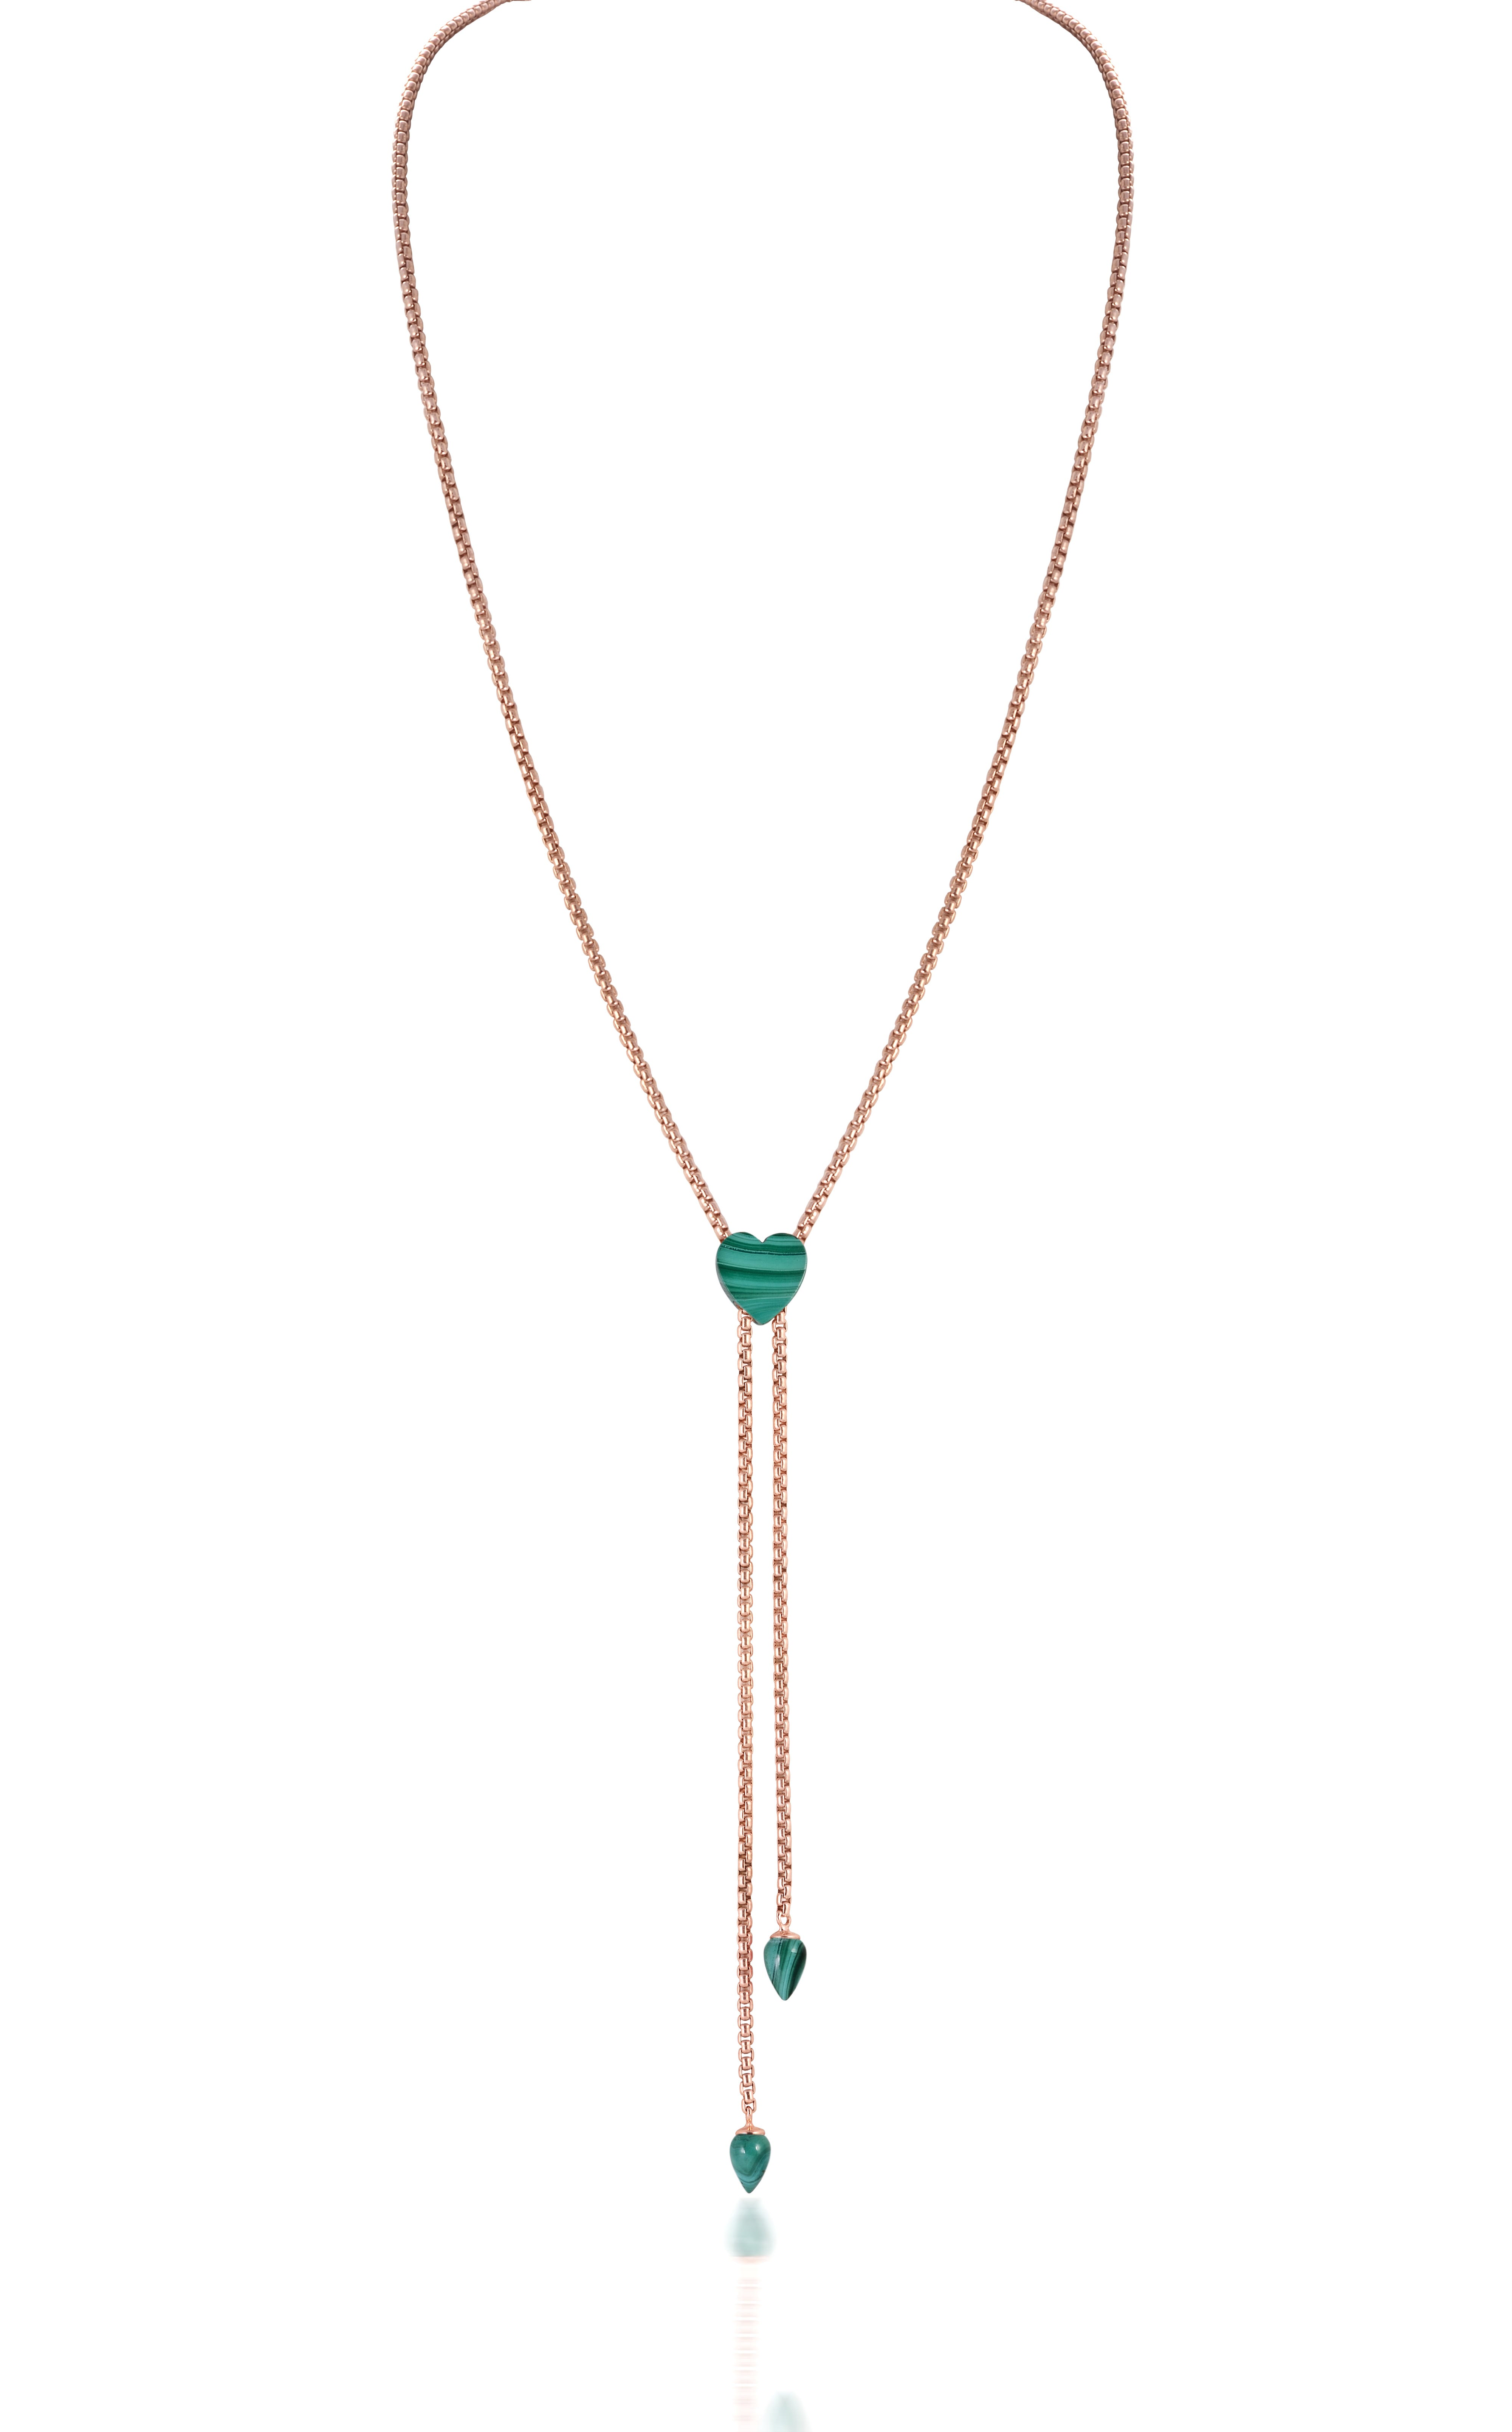 Malachite Adjustable Necklace in Sterling Silver & 14k Rose Gold Plating